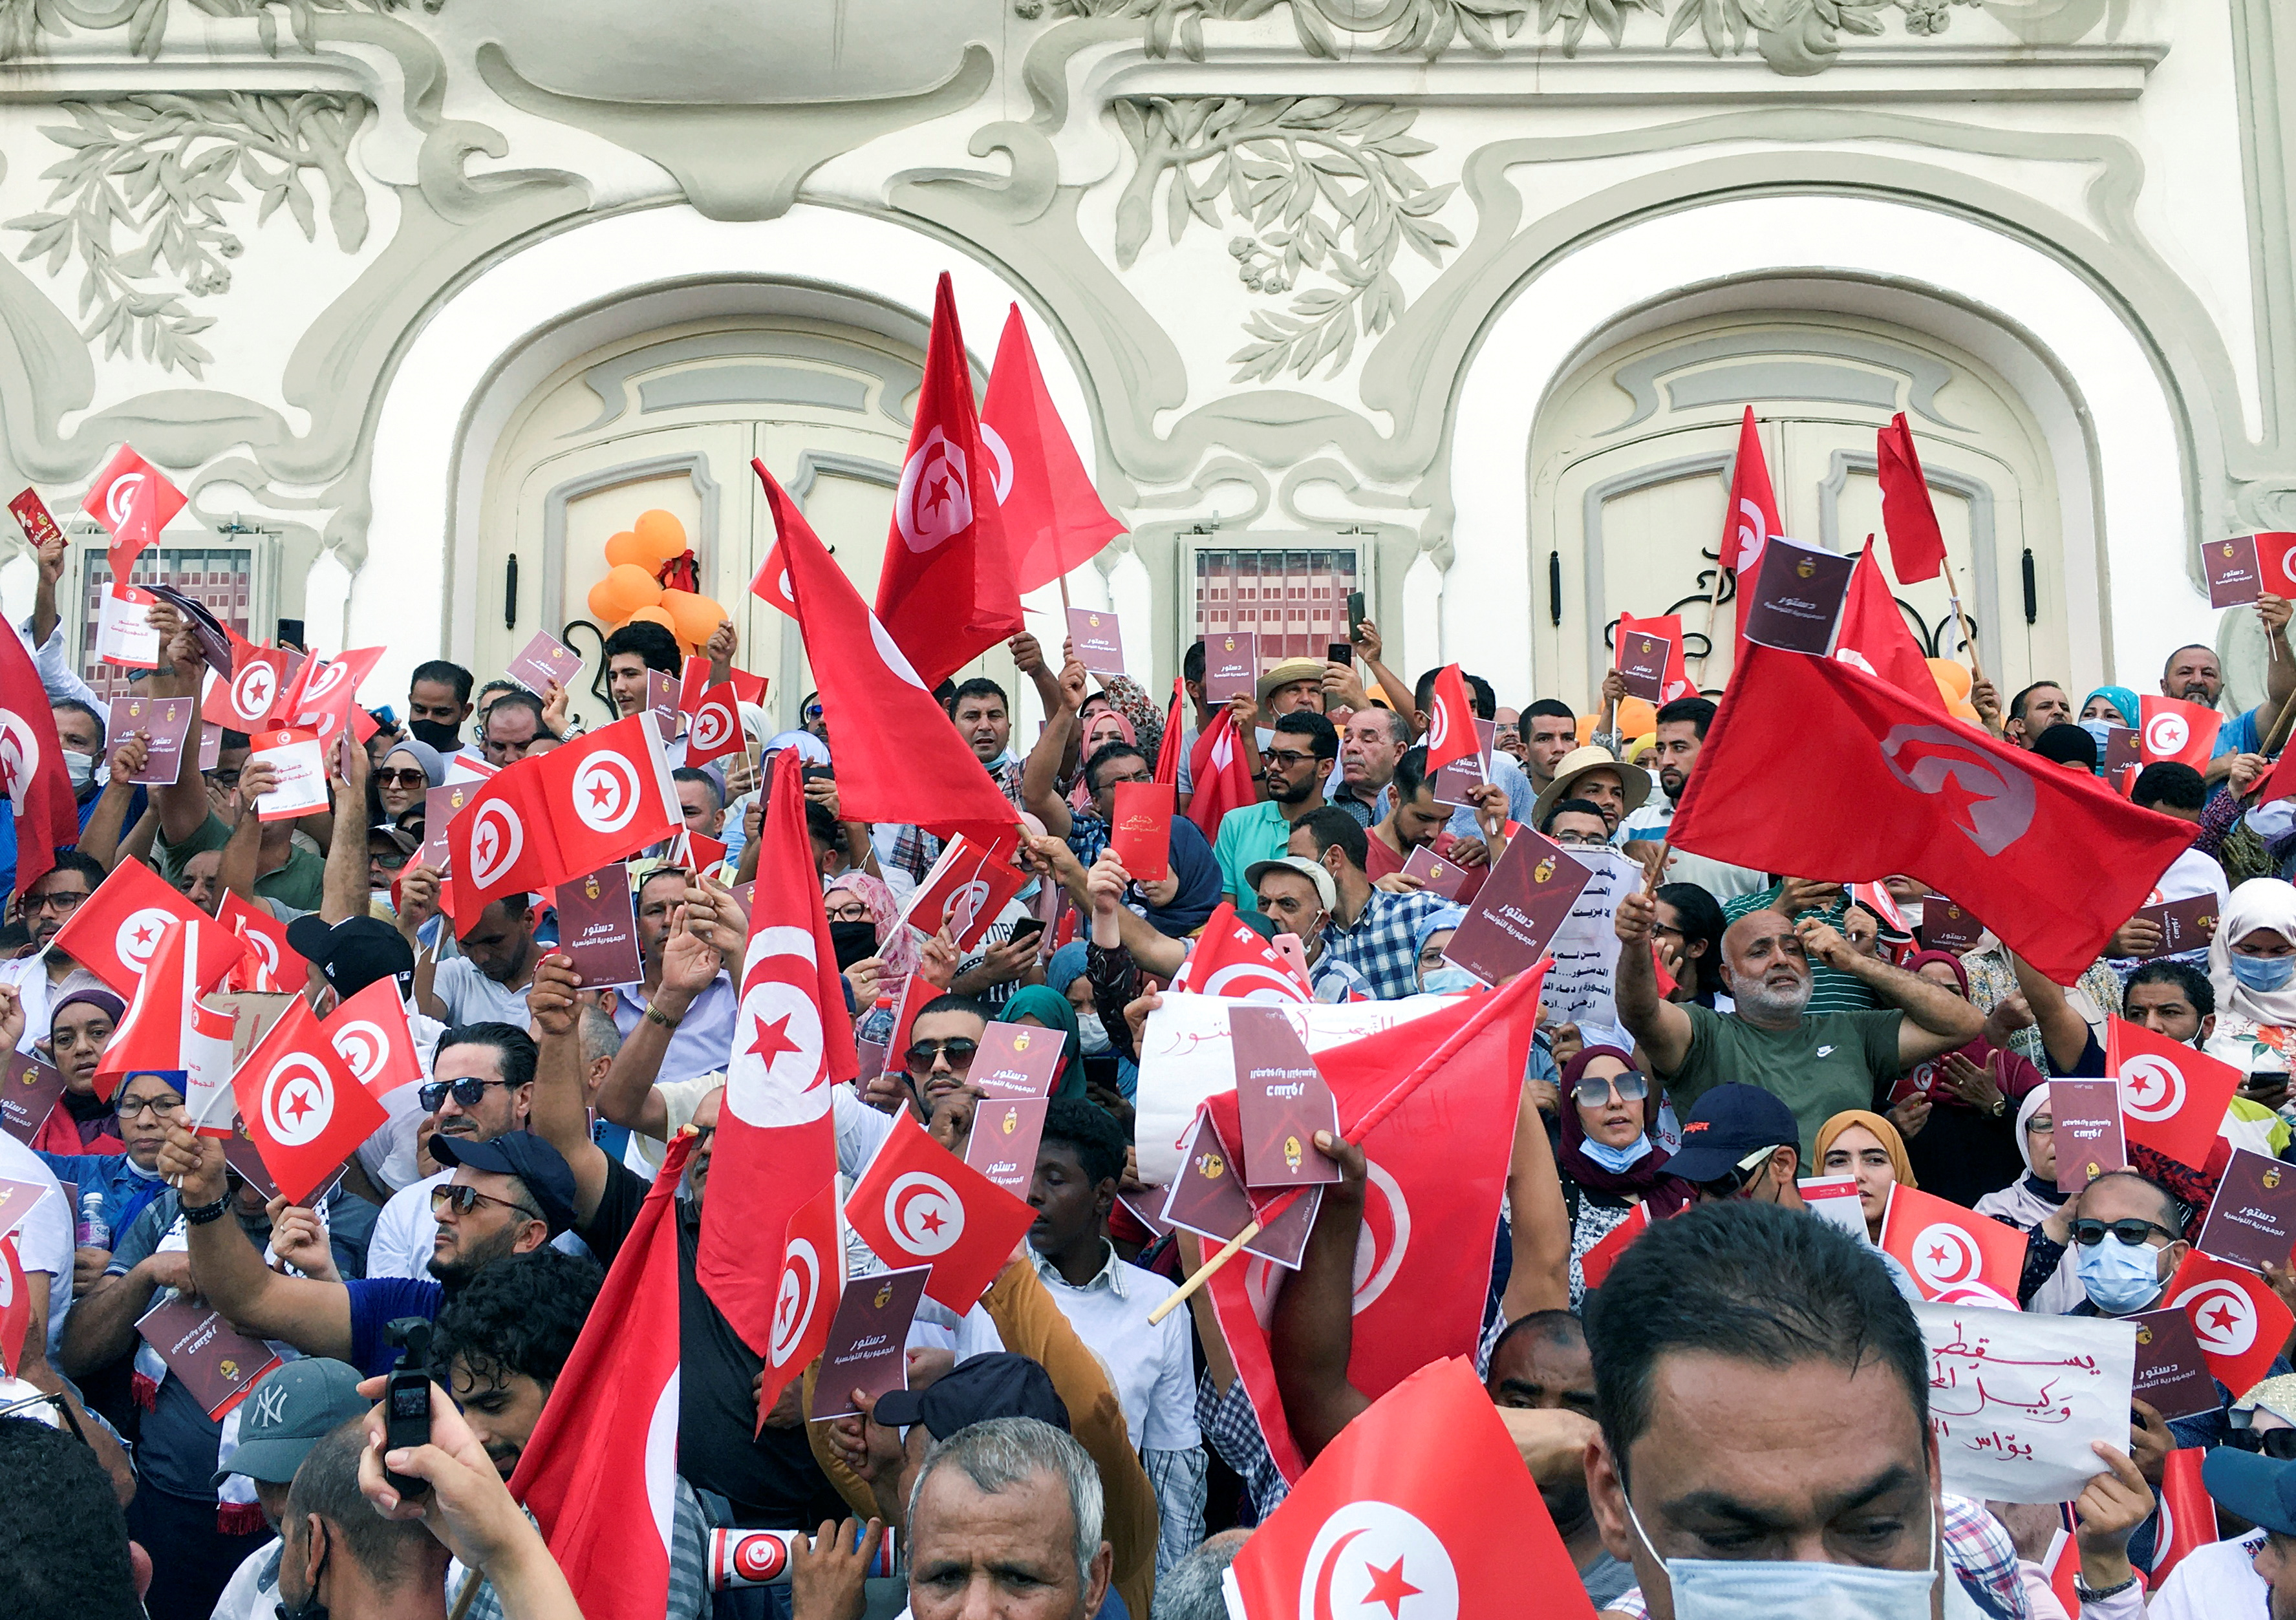 Demonstrators carry flags during a protest against Tunisian President Kais Saied's seizure of governing powers, in Tunis, Tunisia, September 26, 2021. REUTERS/Zoubeir Souissi